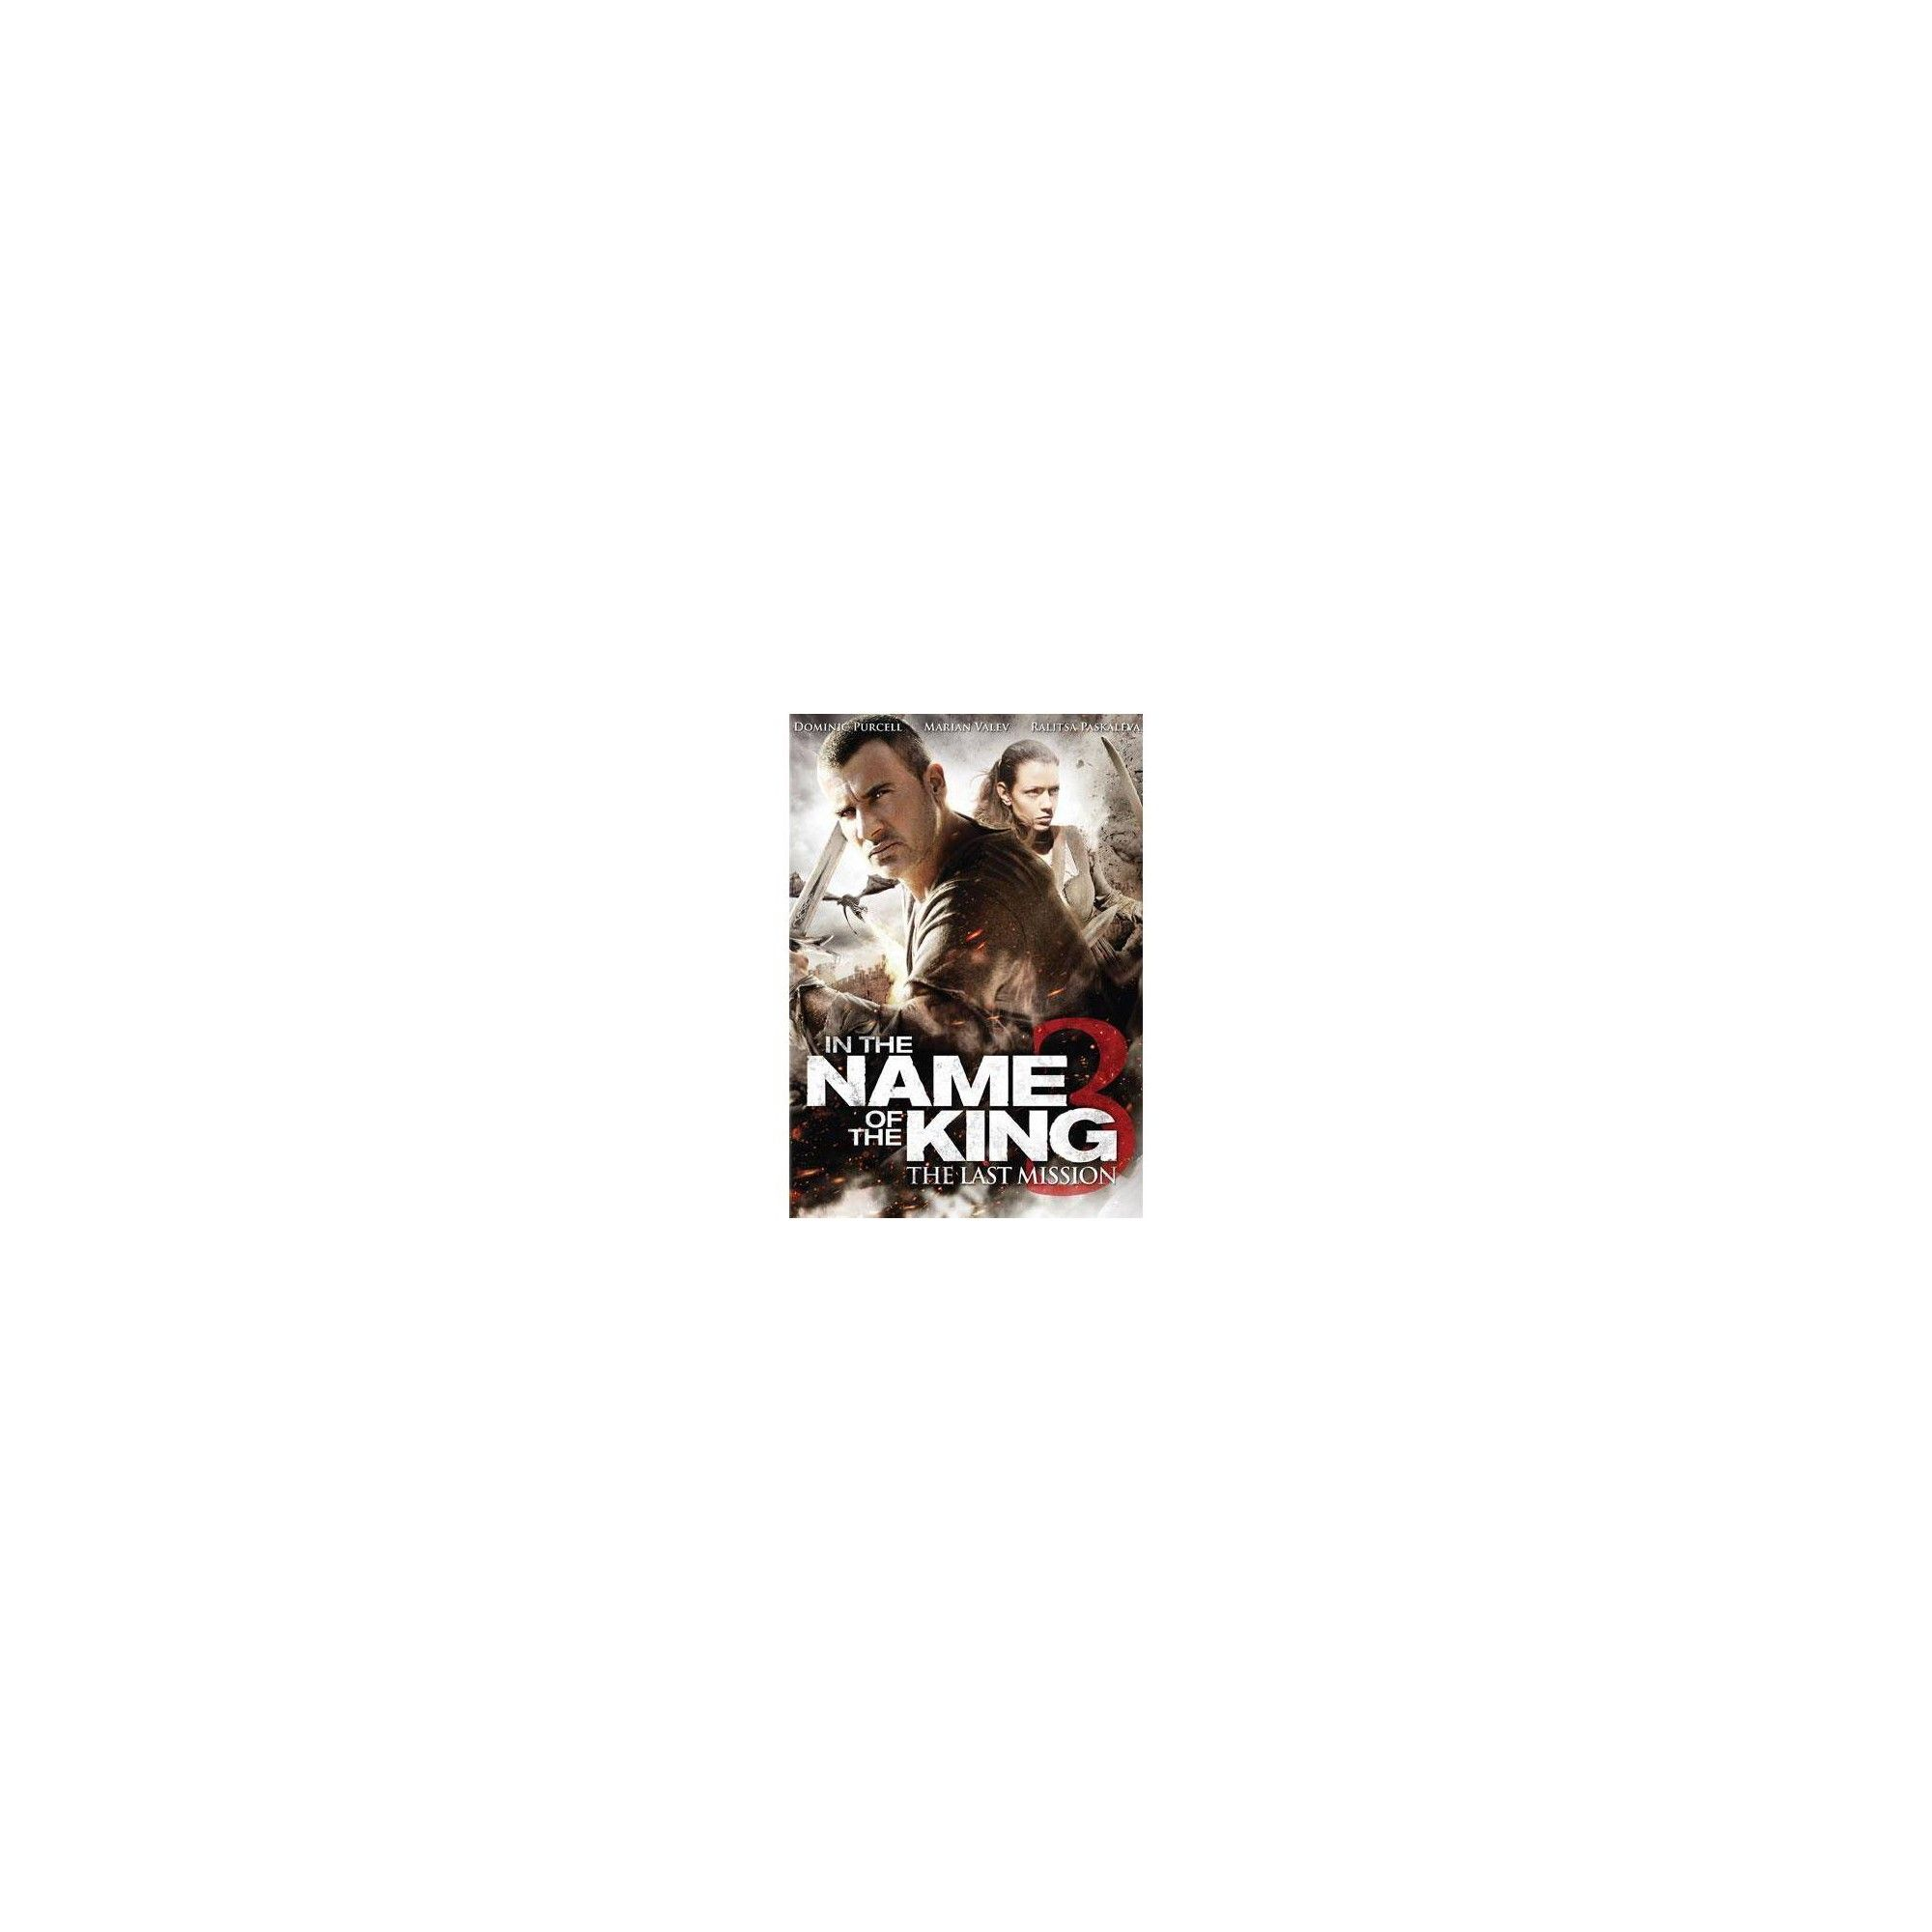 In The Name Of The King 3 The Last Mission Dvd The 3 Kings Mission Dvd